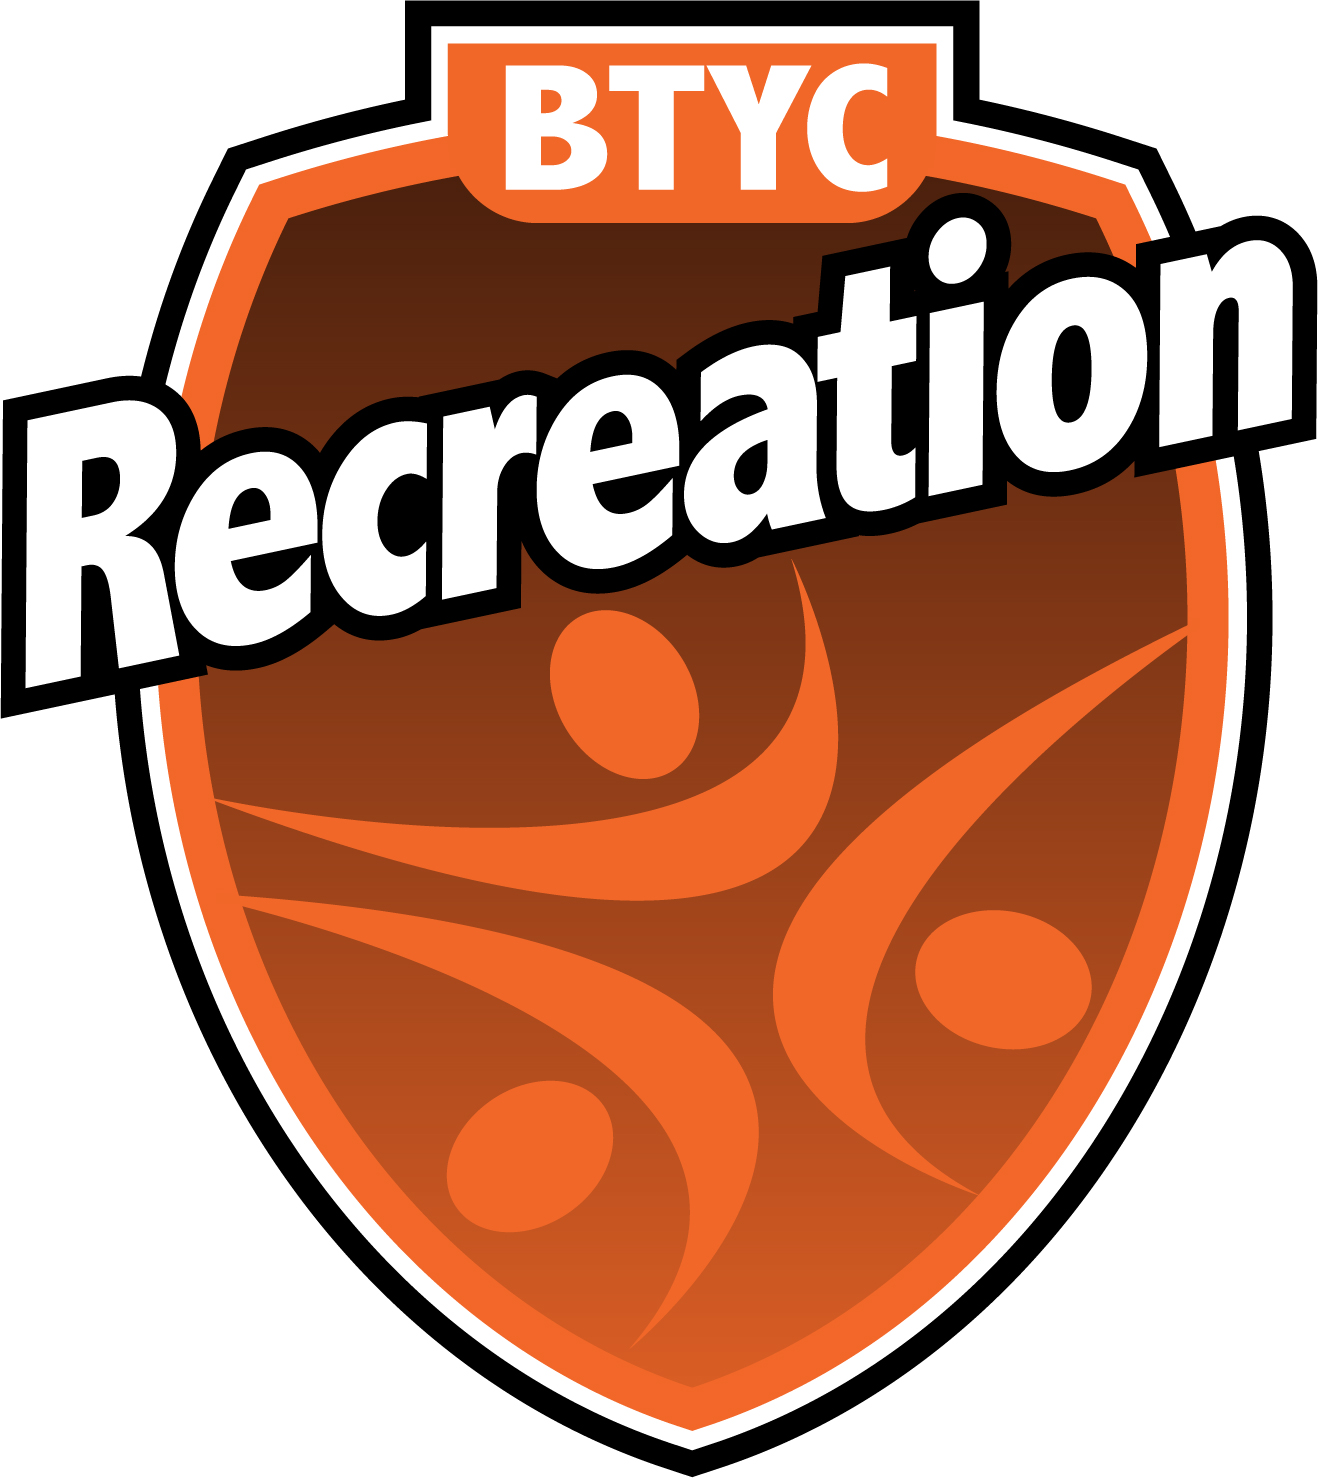 recreational gymnastics at btyc